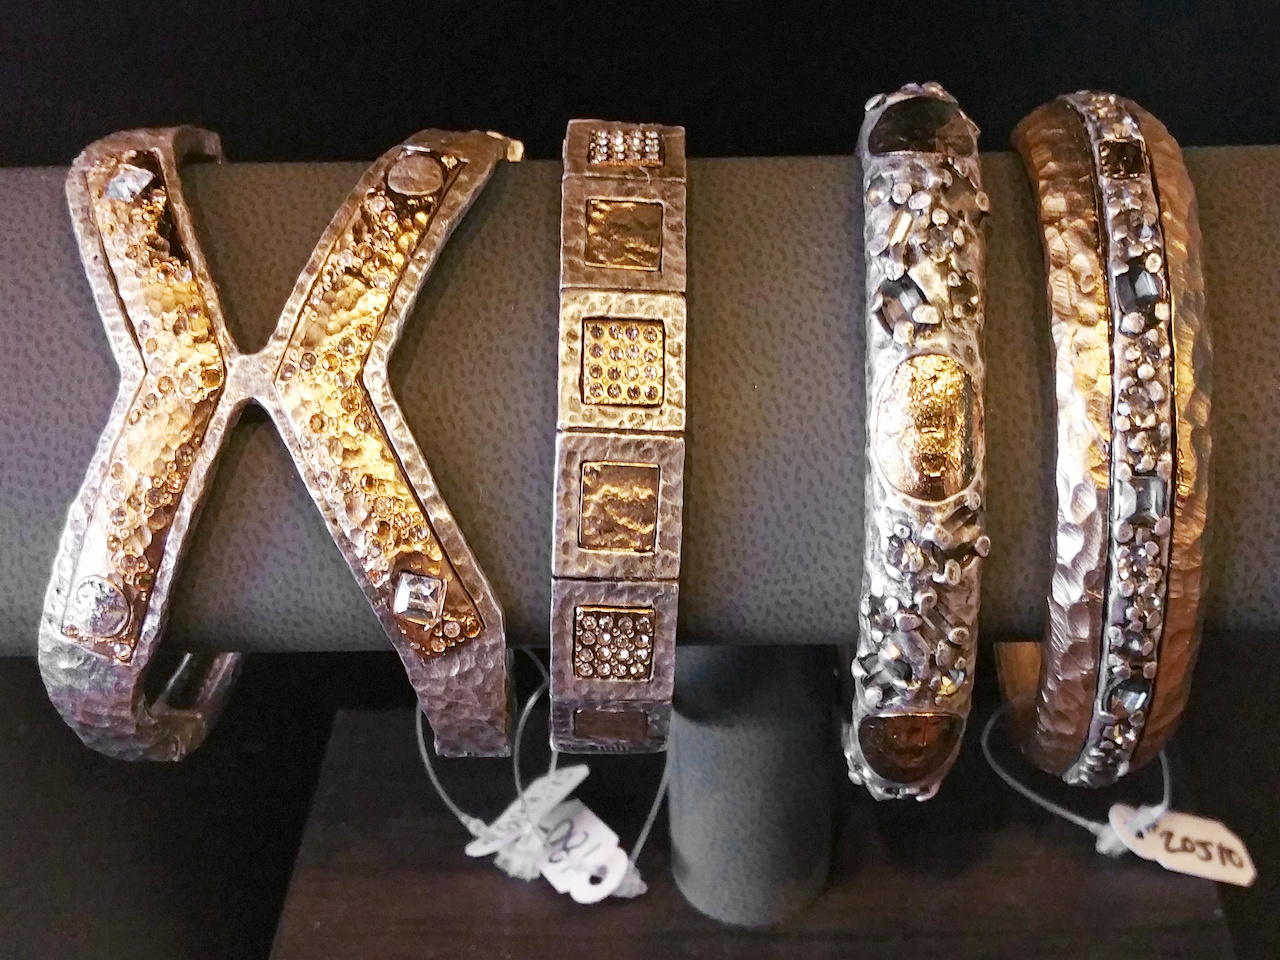 Tat2 Designs bangles, ranging from $180 to $300 each, at Manhattan South